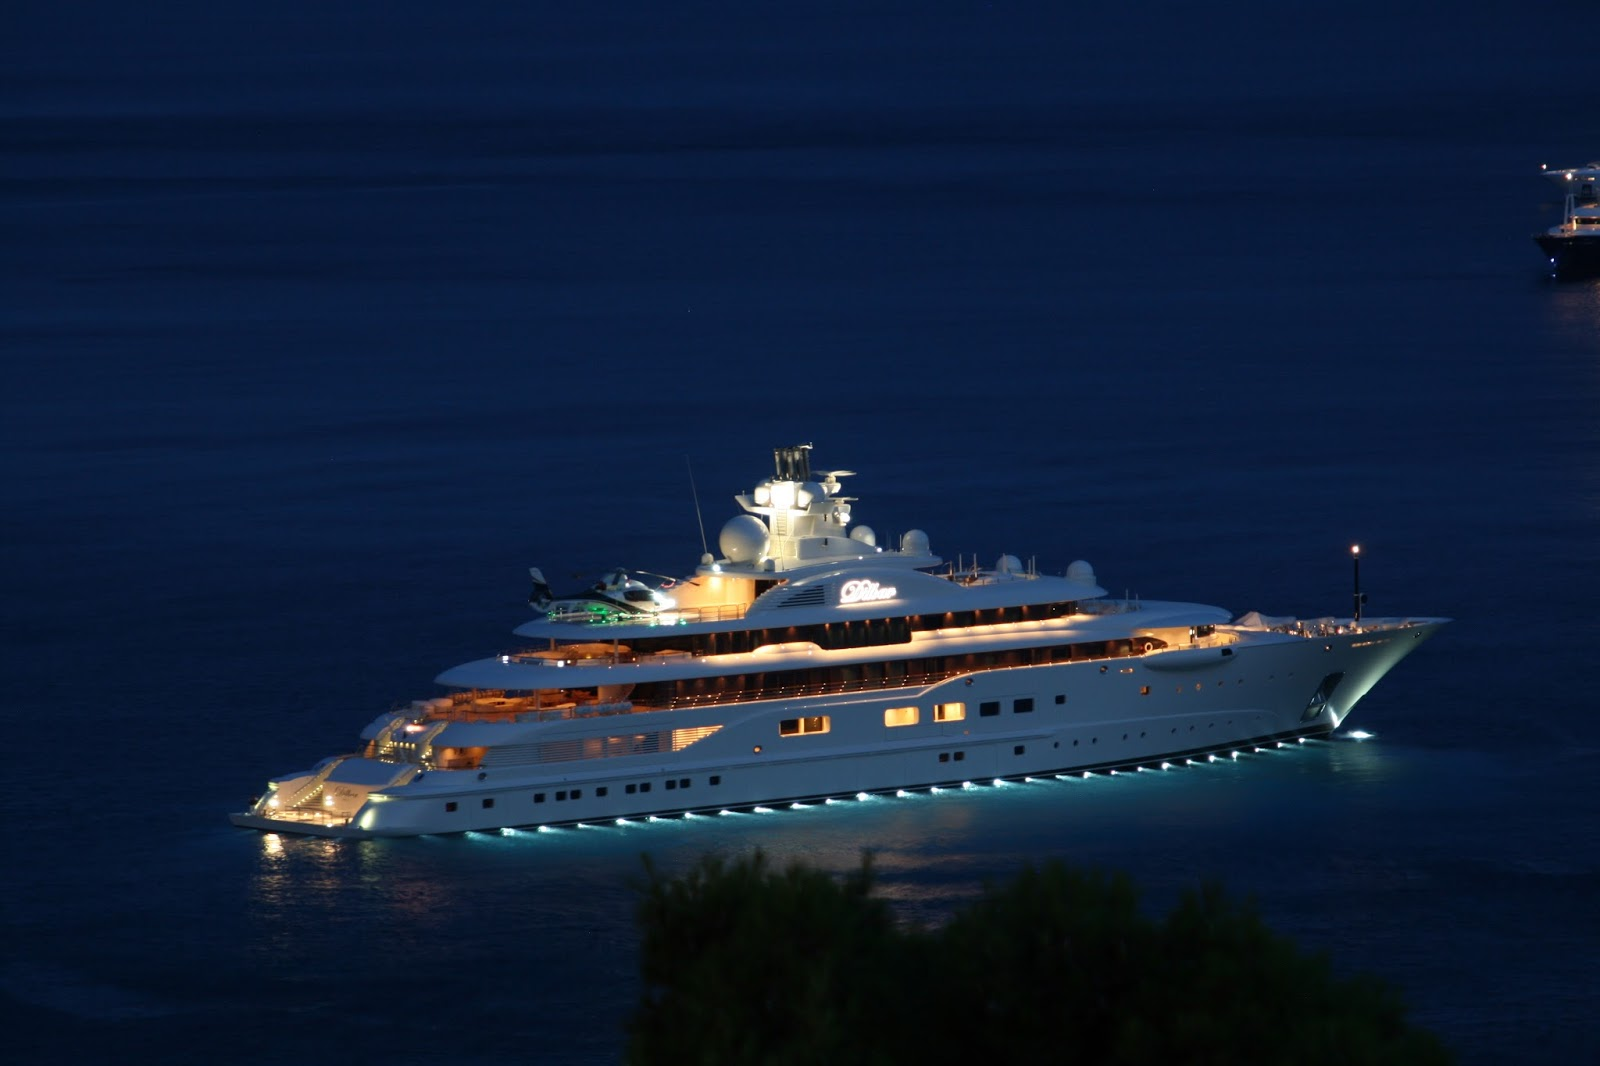 Dilbar Superyacht Night